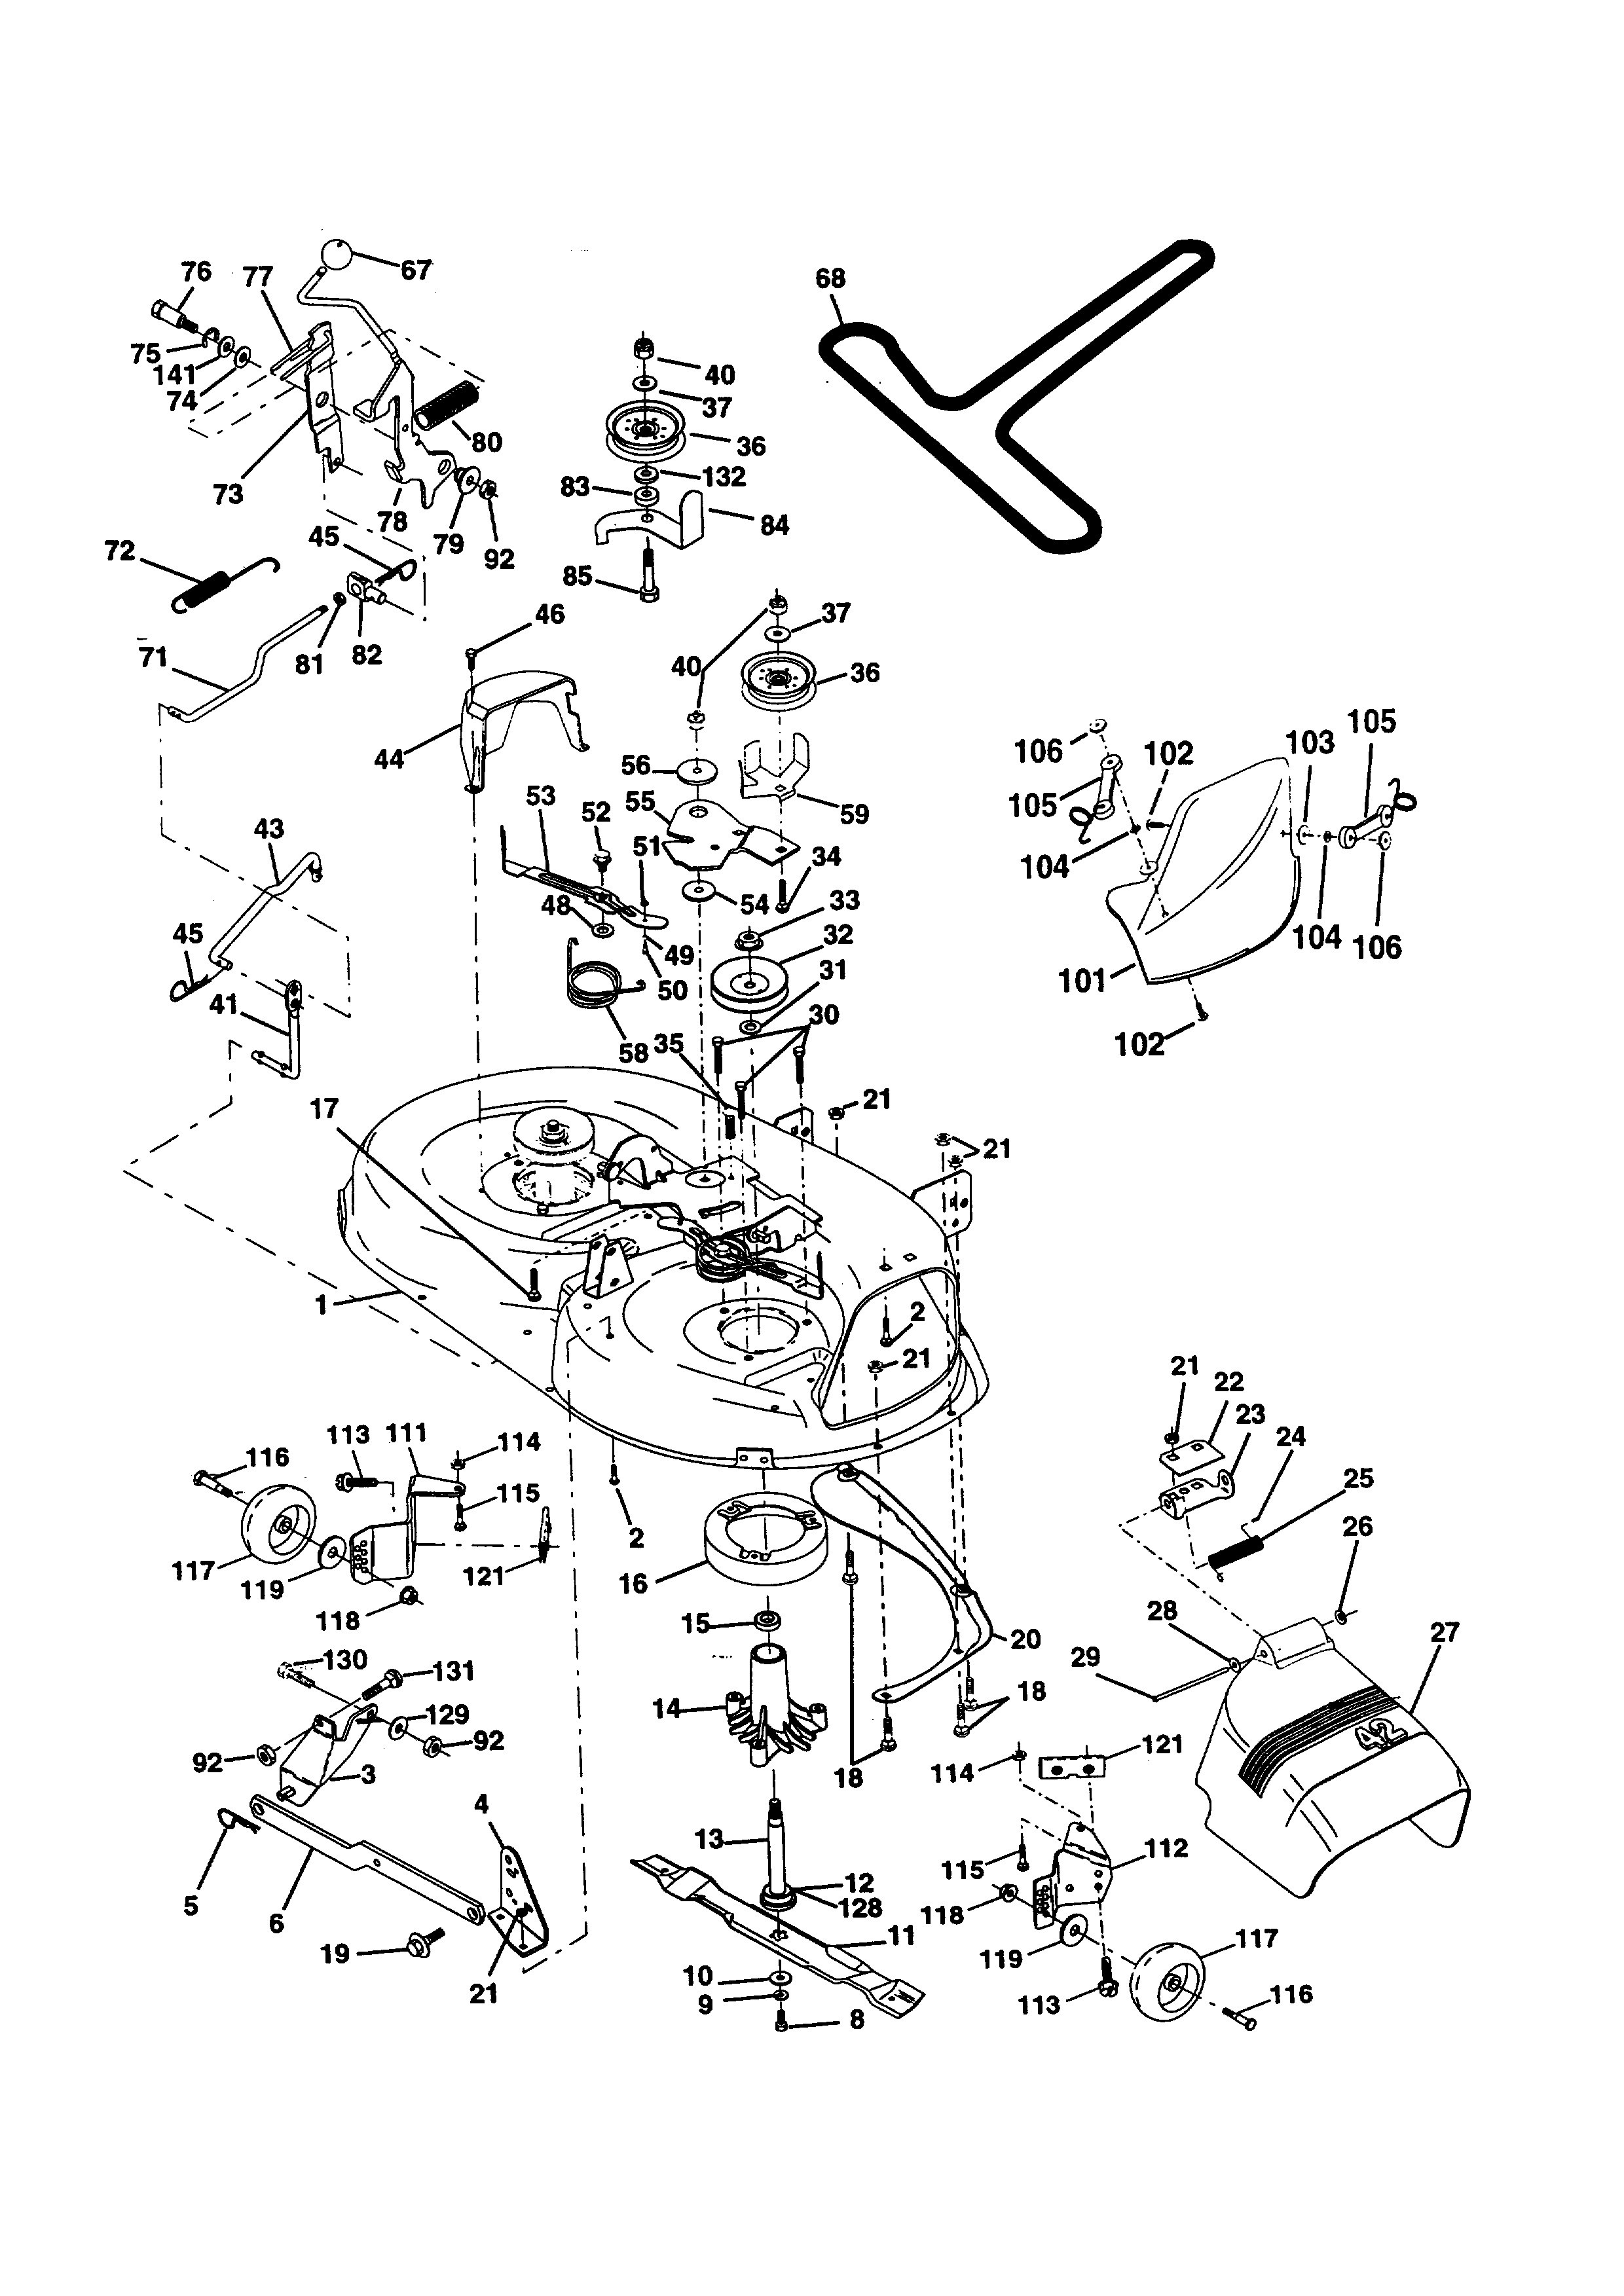 Briggs and Stratton Lawn Mower Parts Diagram Craftsman 42 Riding Lawn Mower Wiring Diagram Wiring Wiring Of Briggs and Stratton Lawn Mower Parts Diagram Briggs and Stratton Recoil Starter assembly Diagram – Awesome